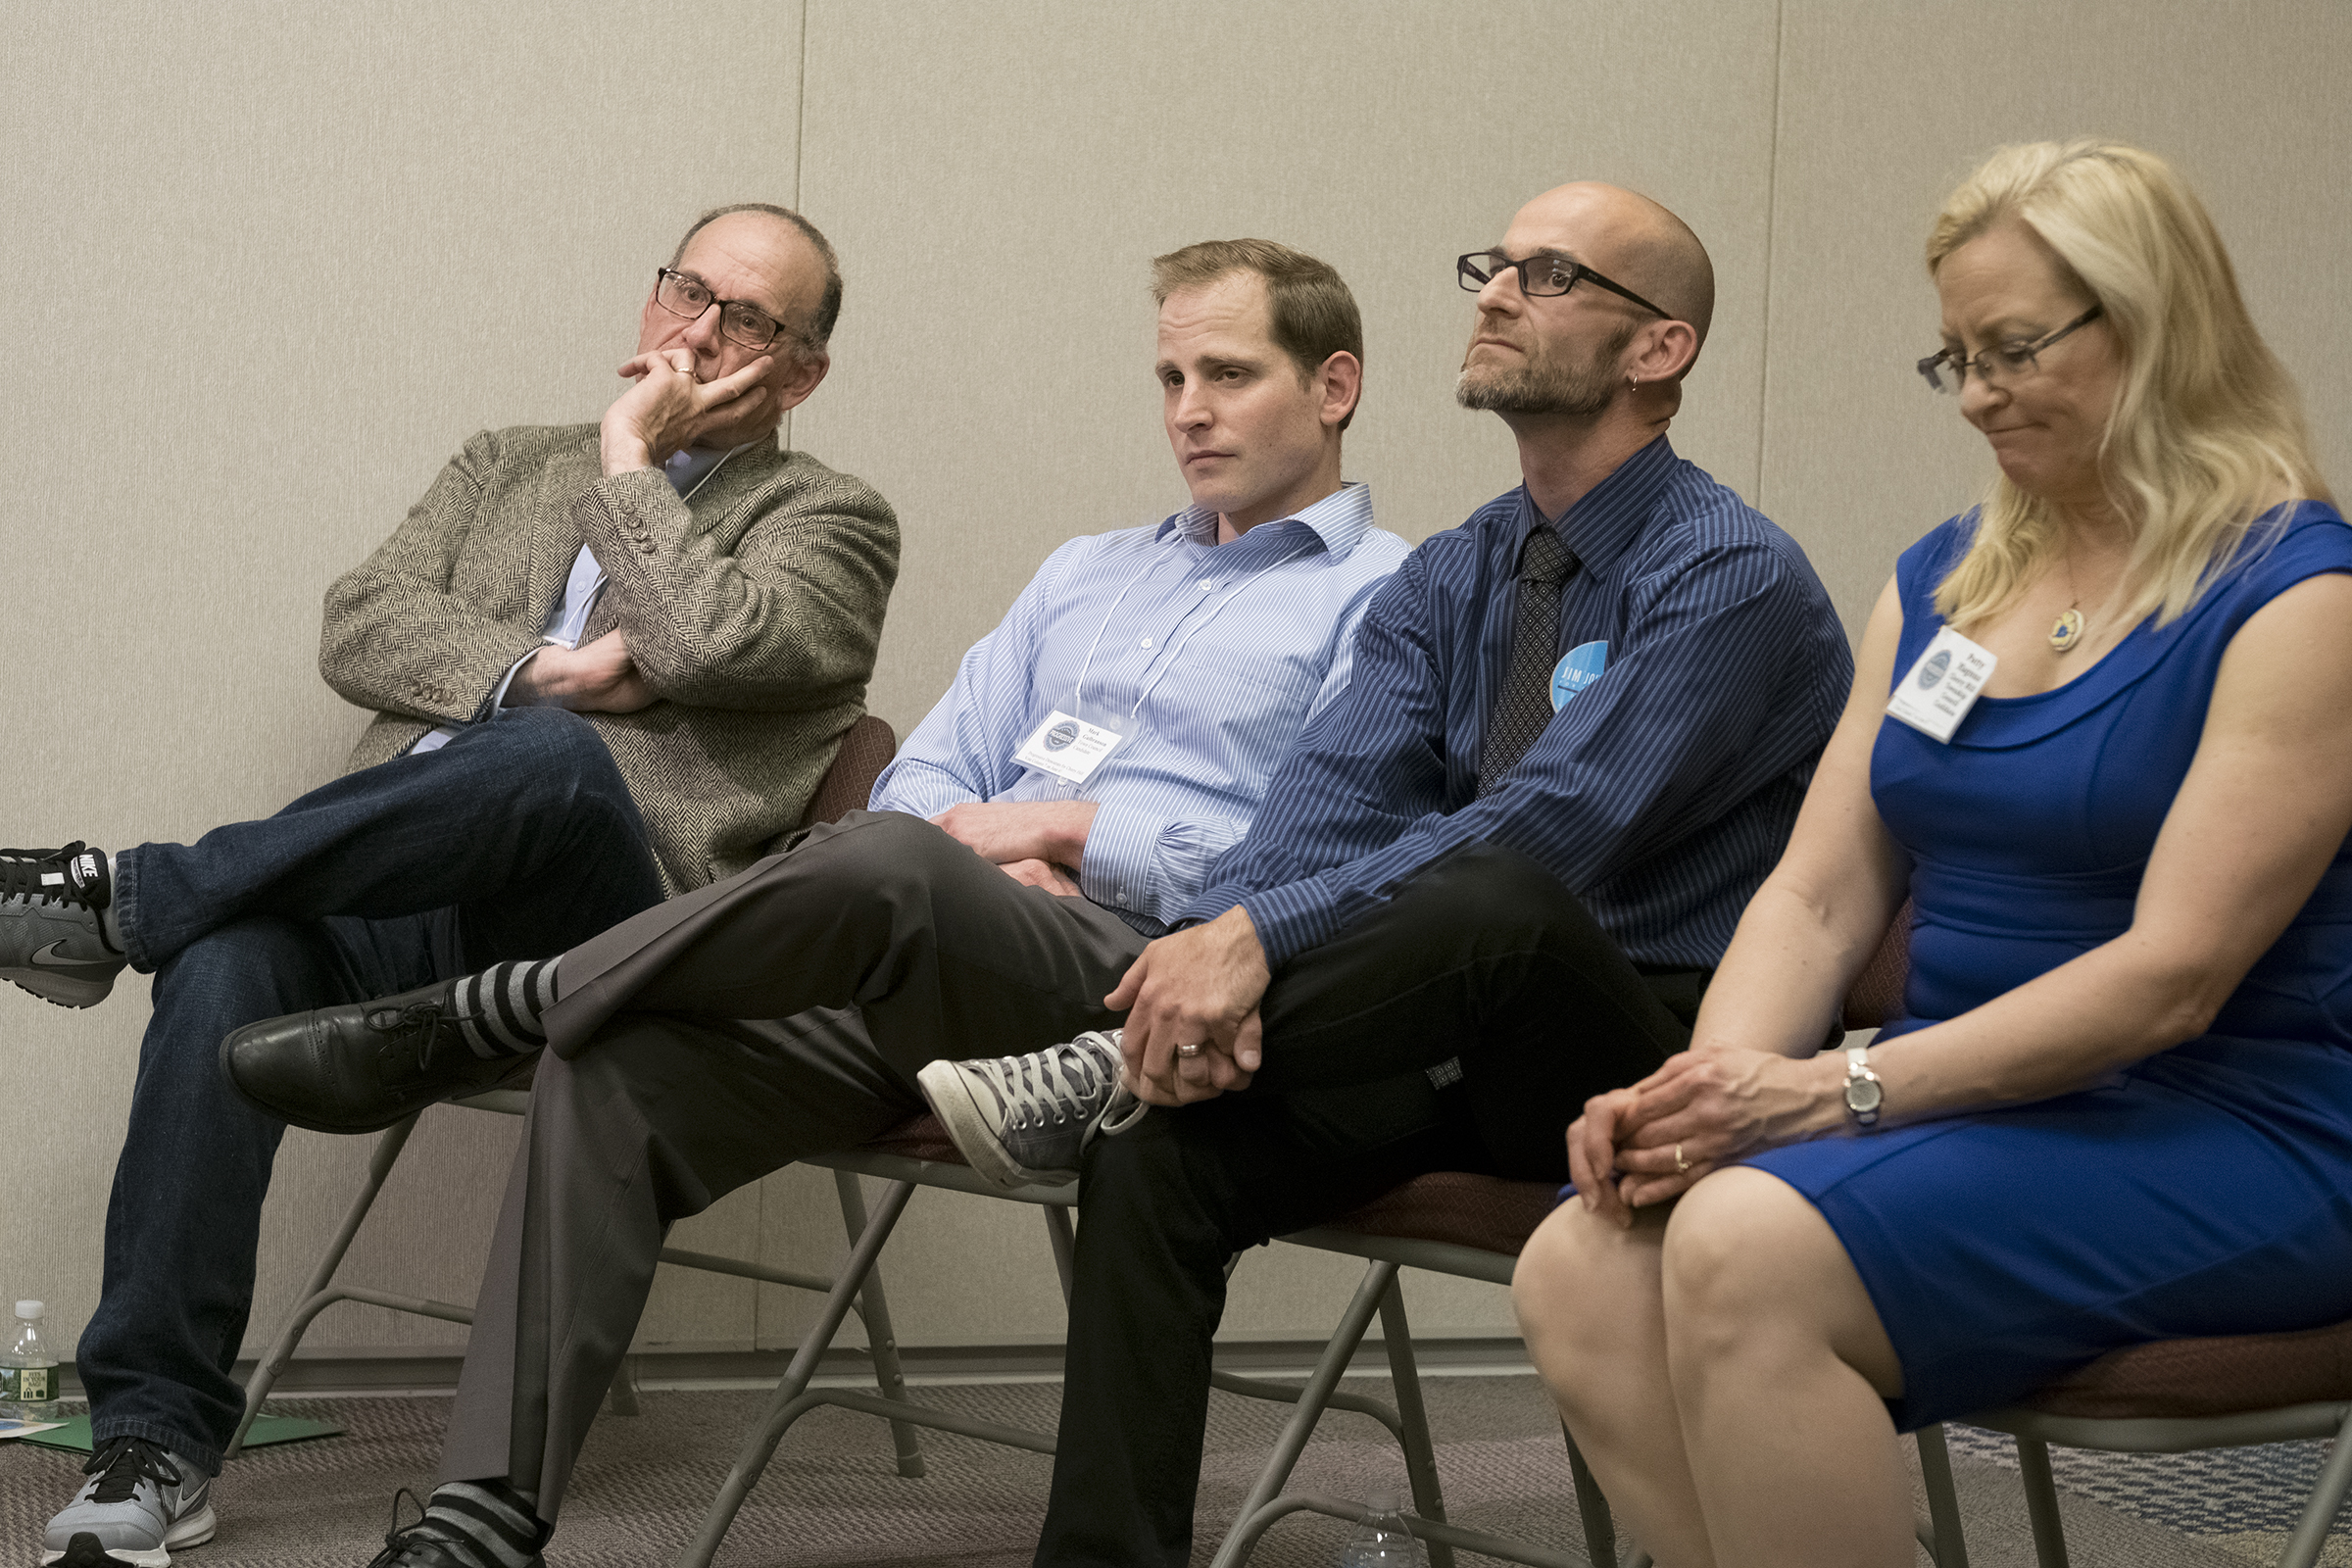 Progressives failed to unseat party regulars in Cherry Hill. The candidates were (from left) Scott Soffen, Mark Gulbranson Jr, Joshua Hare. and Patty Magnus. (ED HILLE / Staff)